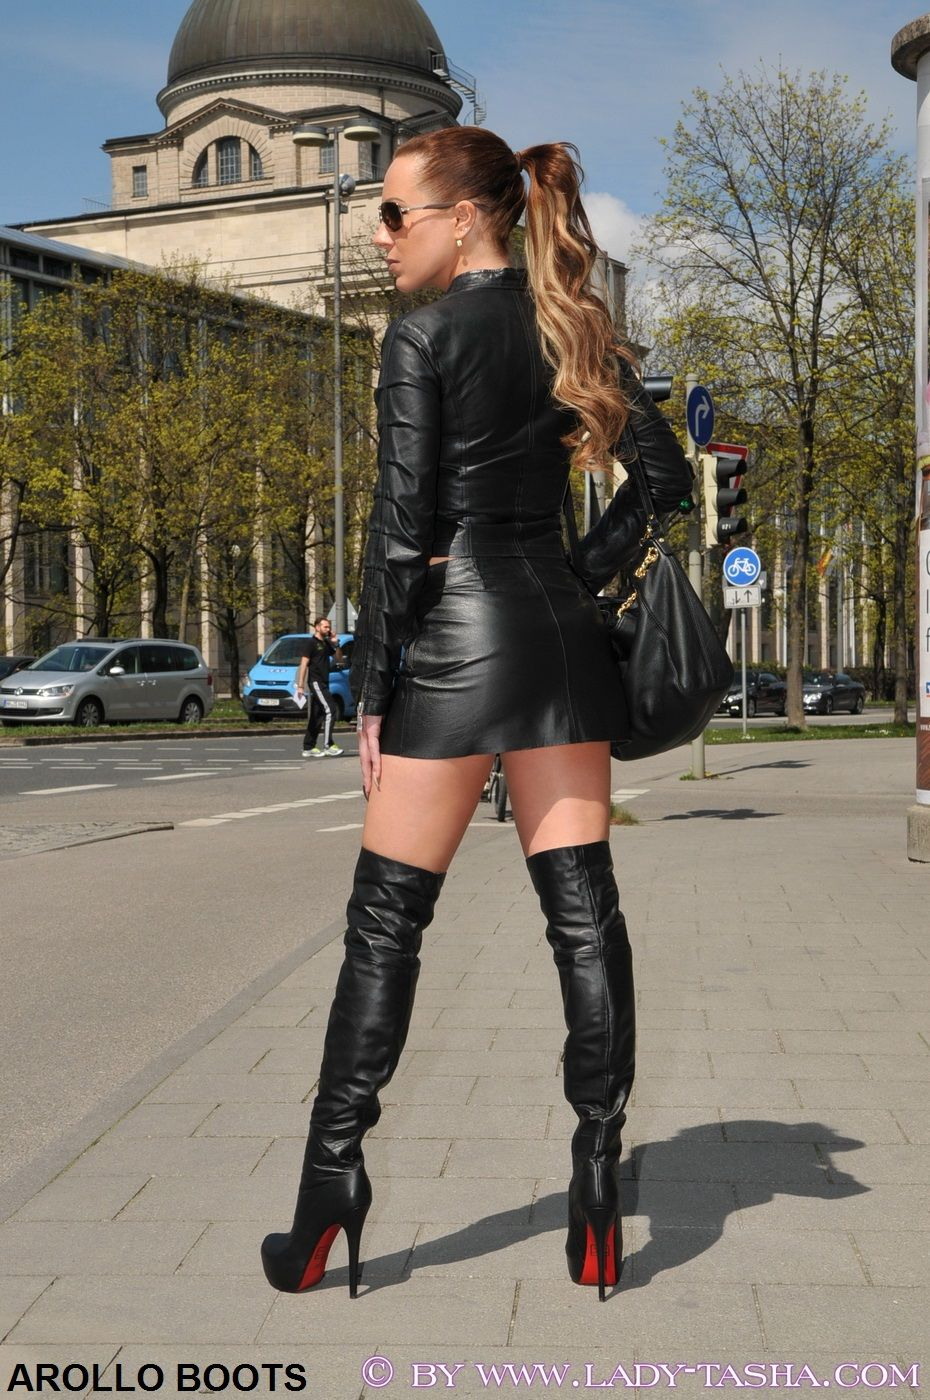 Sexy women in leather boots